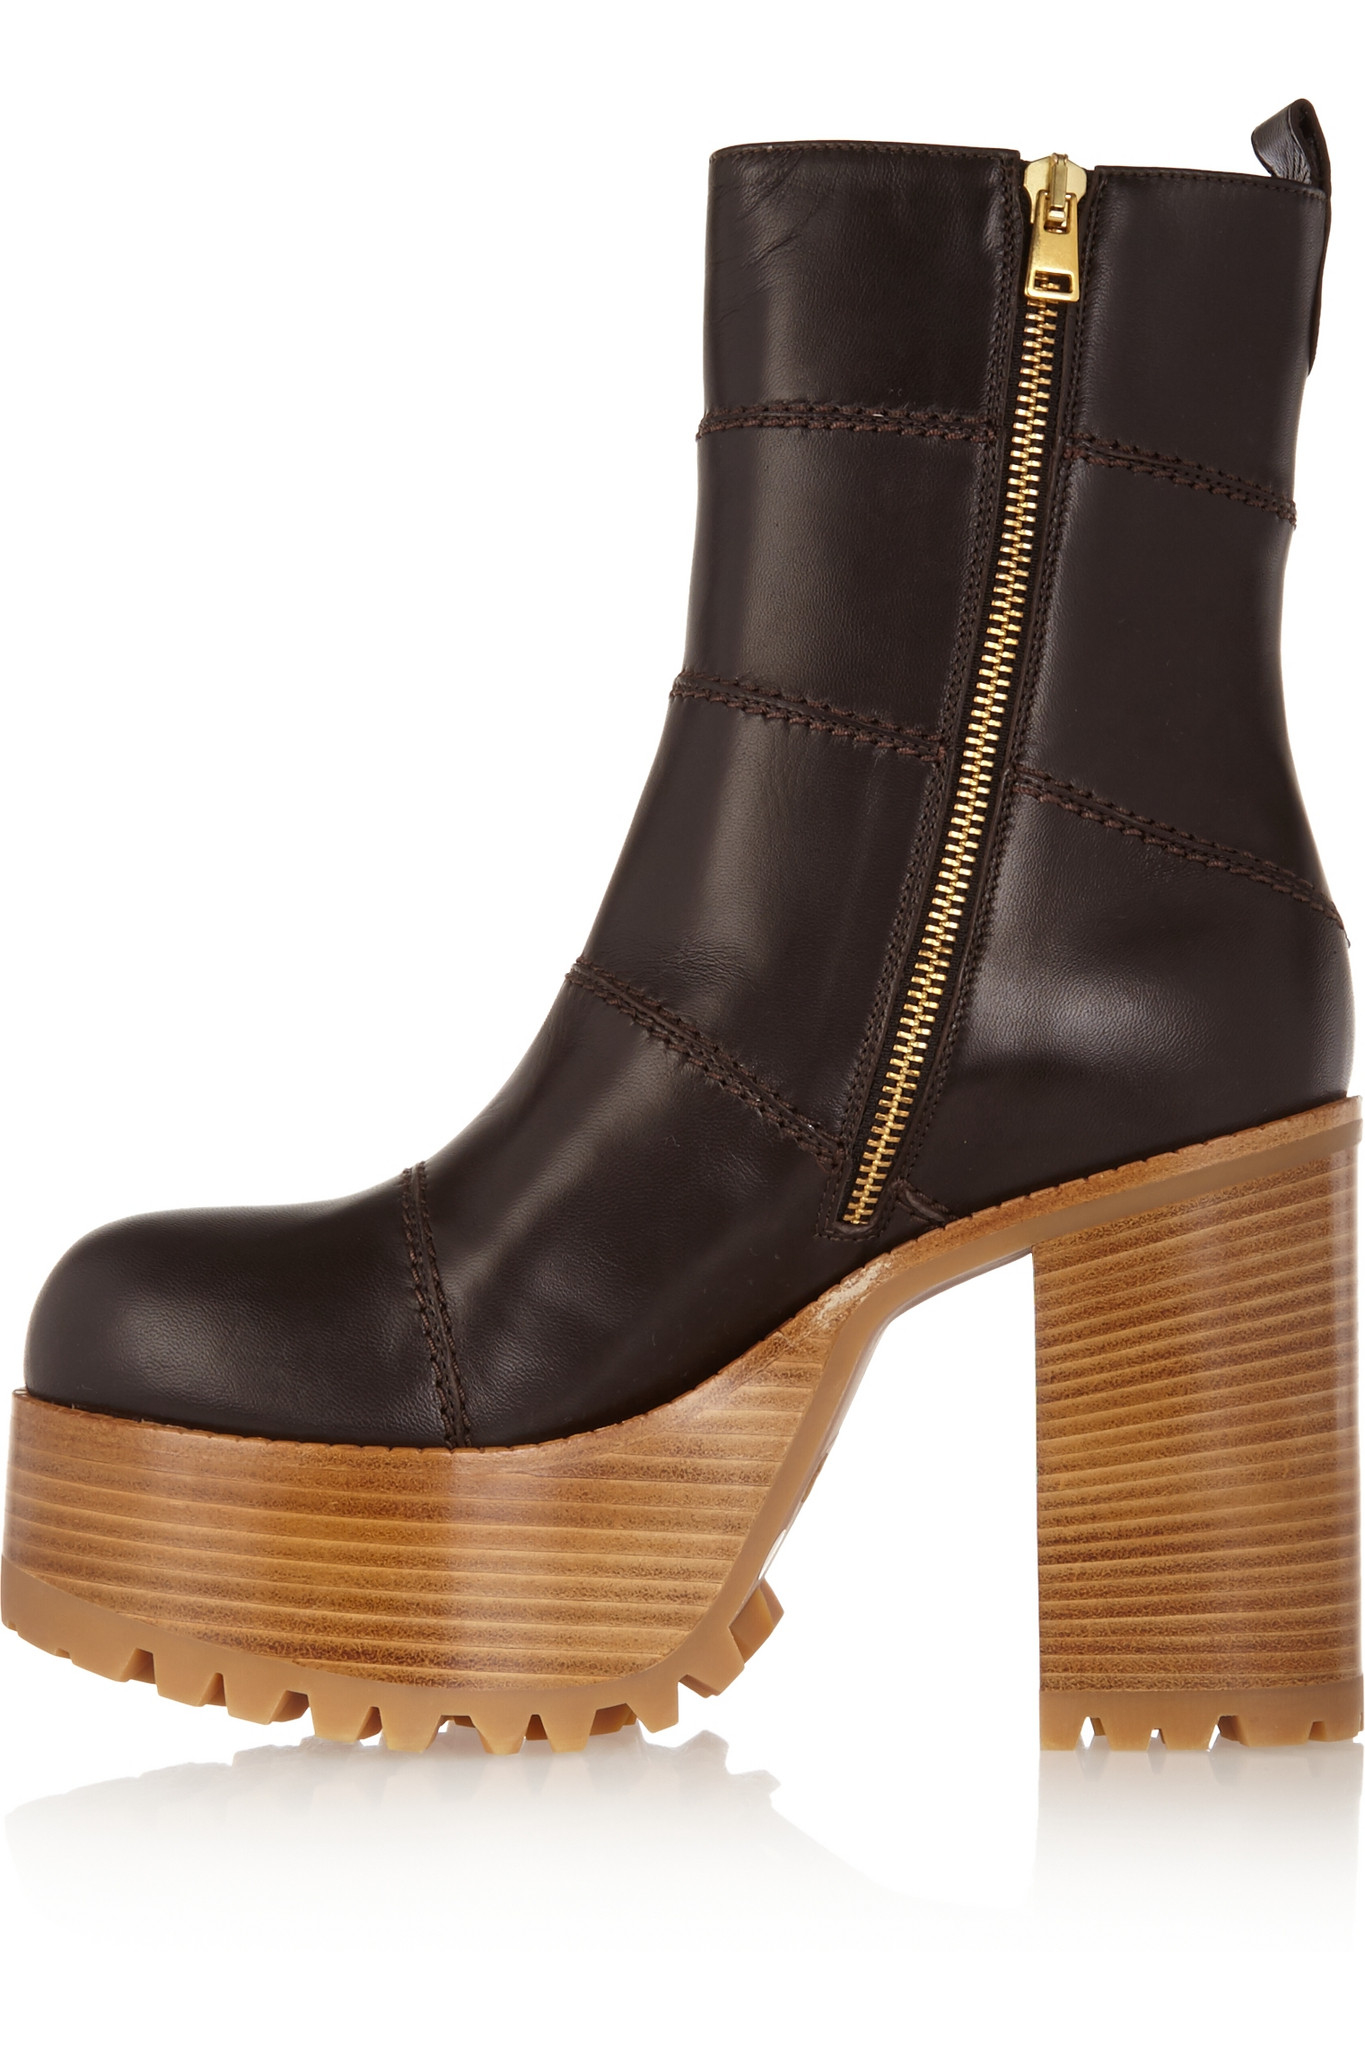 Marni Platform Leather Boots 2014 cheap price caWHuYcPUF